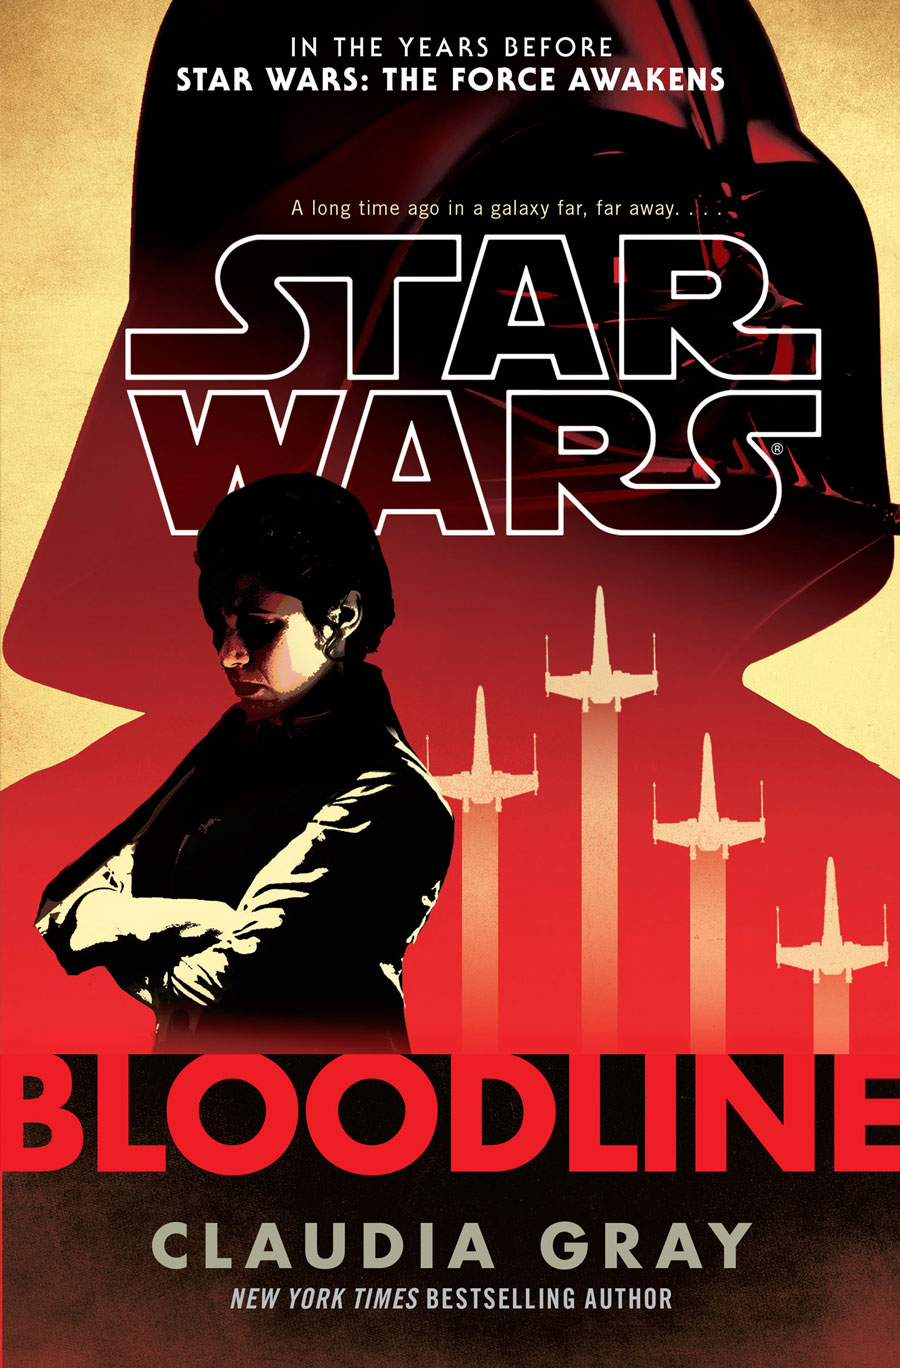 The cover of Star Wars: Bloodline, featuring Leia and the shadow of Darth Vader.